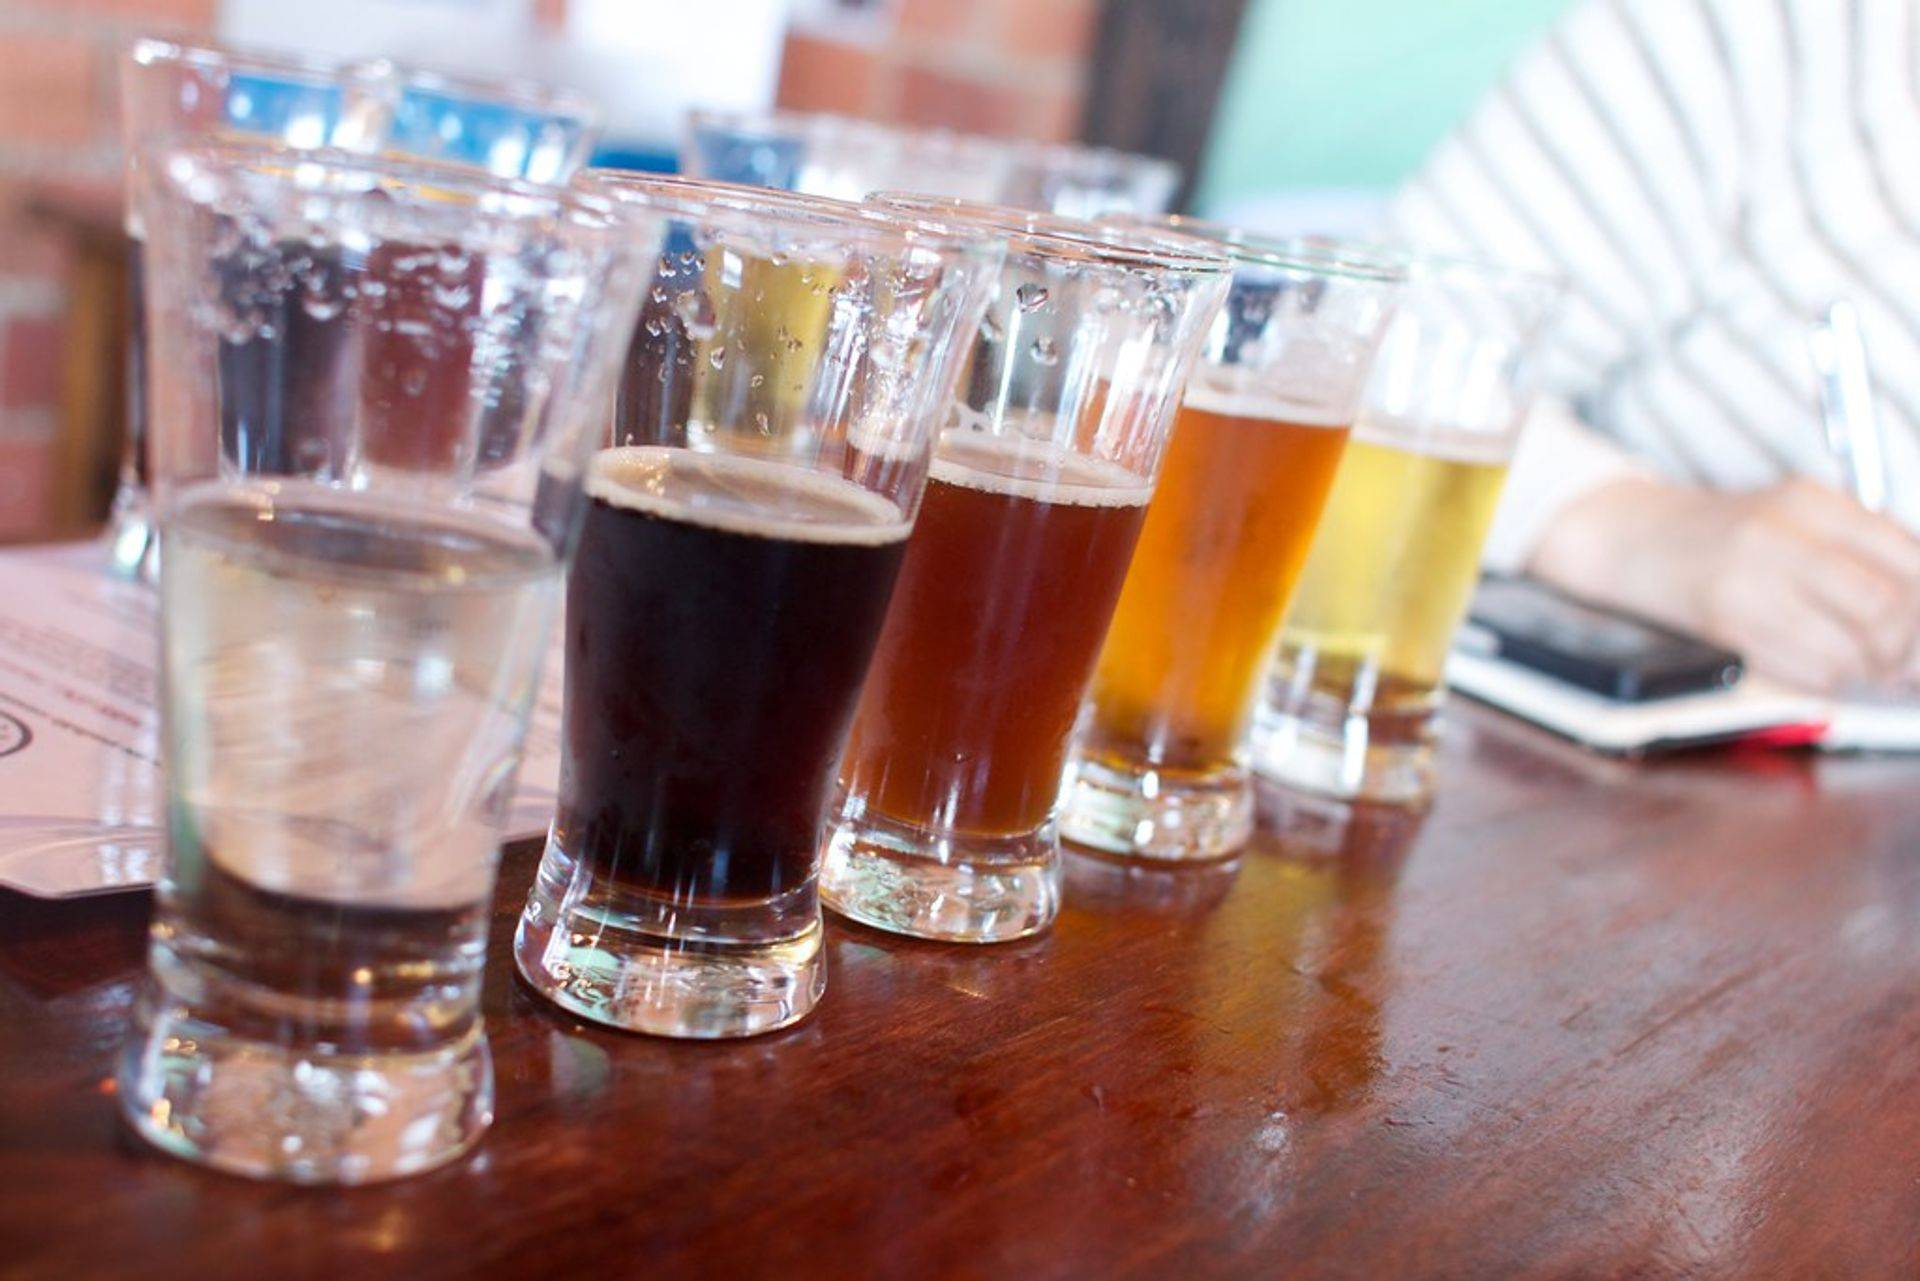 Grumpy Old Men and Fannin Brewery Beers on Tap